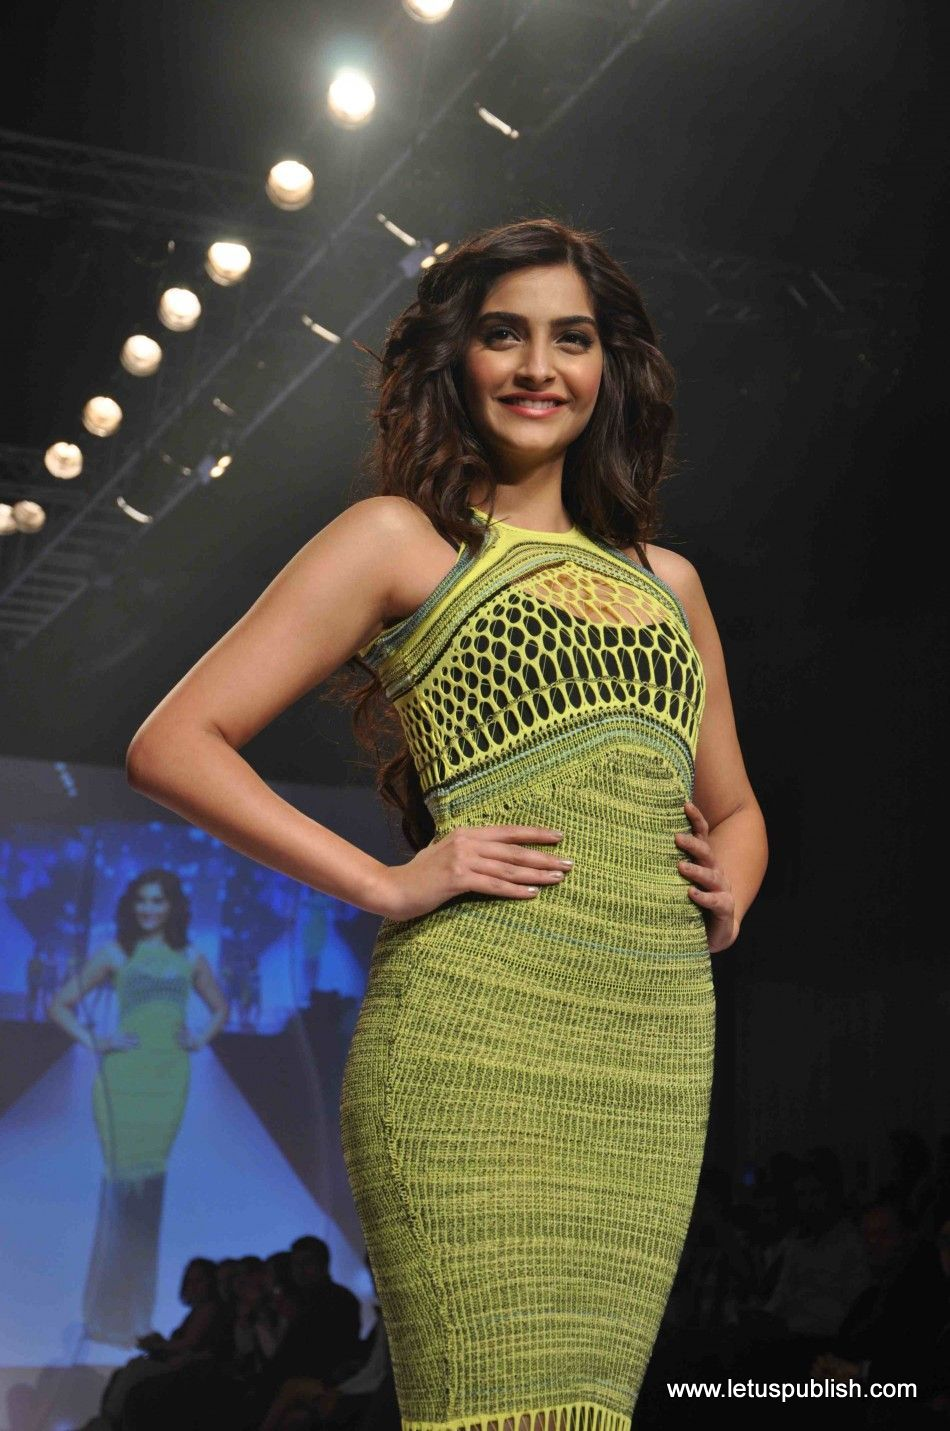 Latest image of Sonam Kapoor